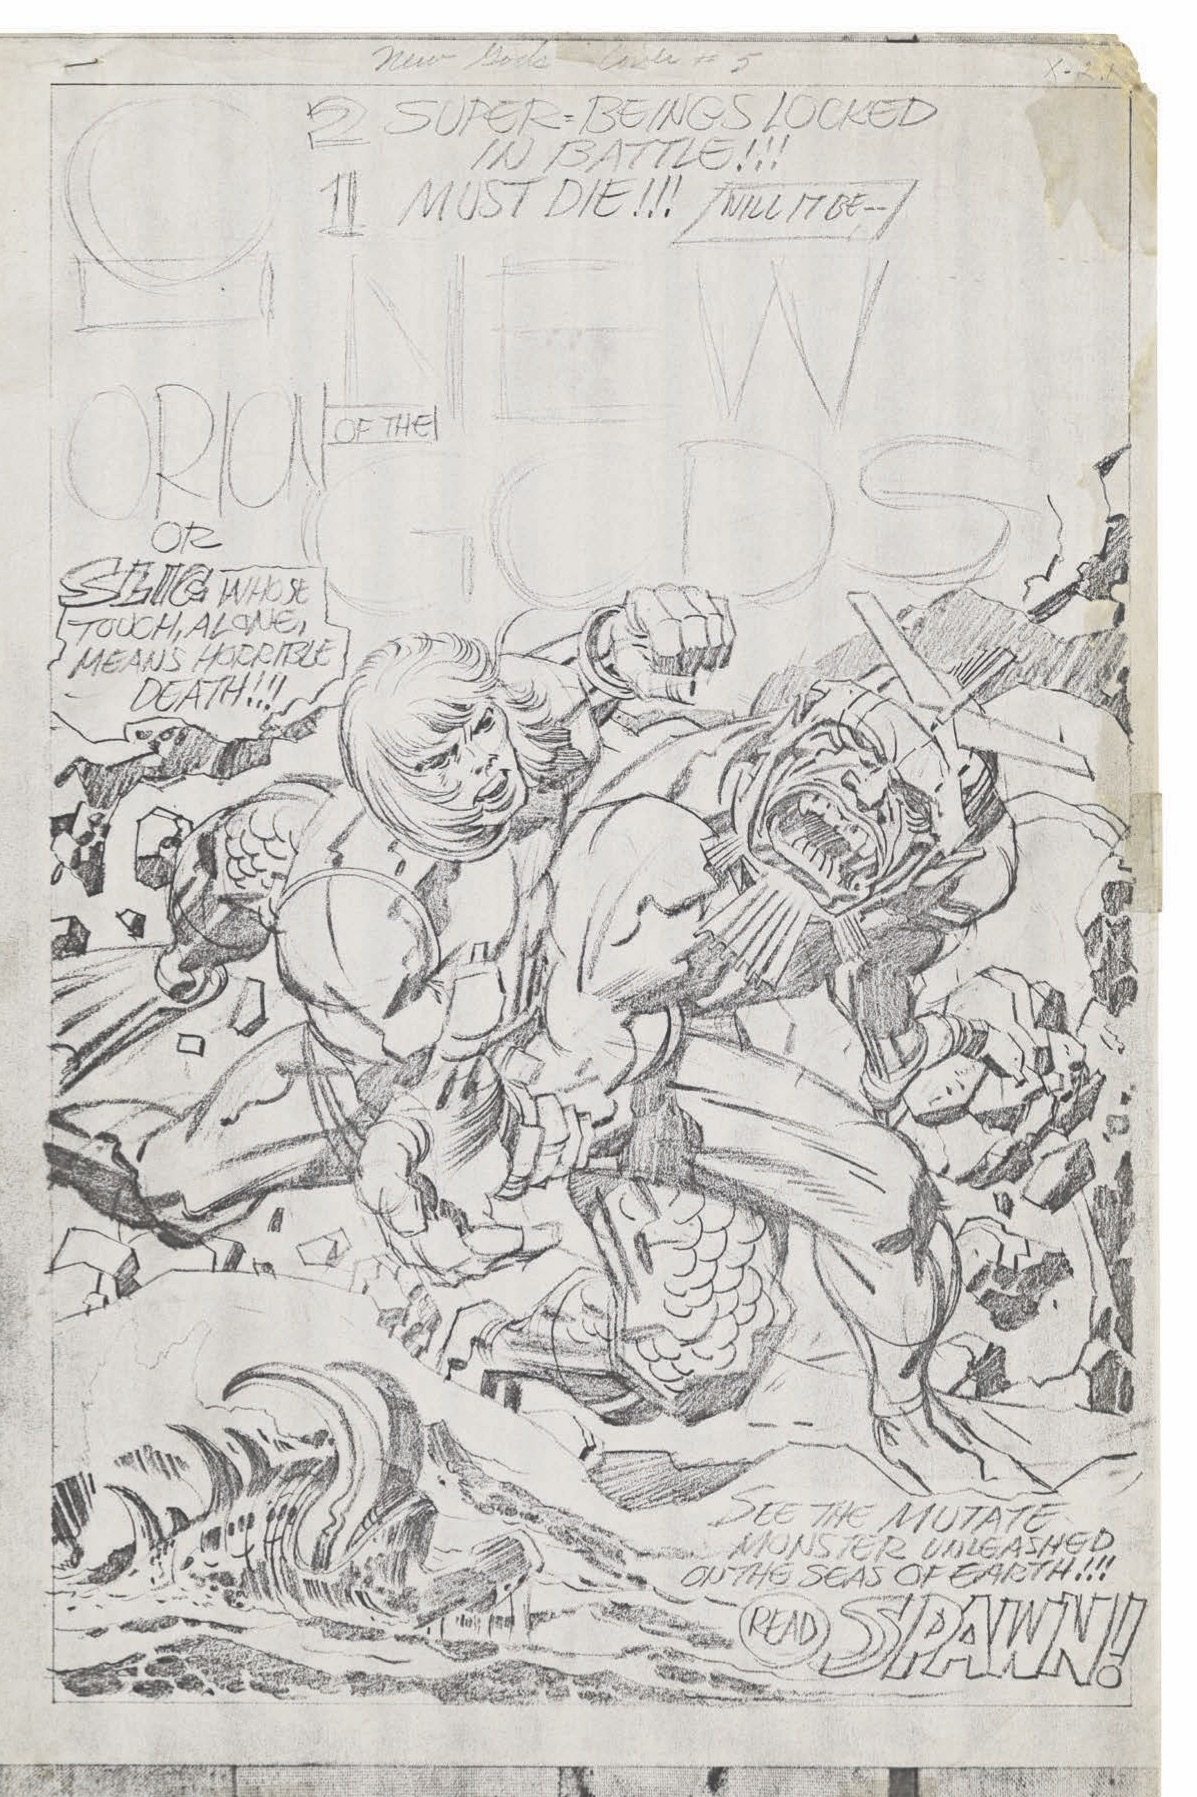 jackkirby_pencils_inks-long